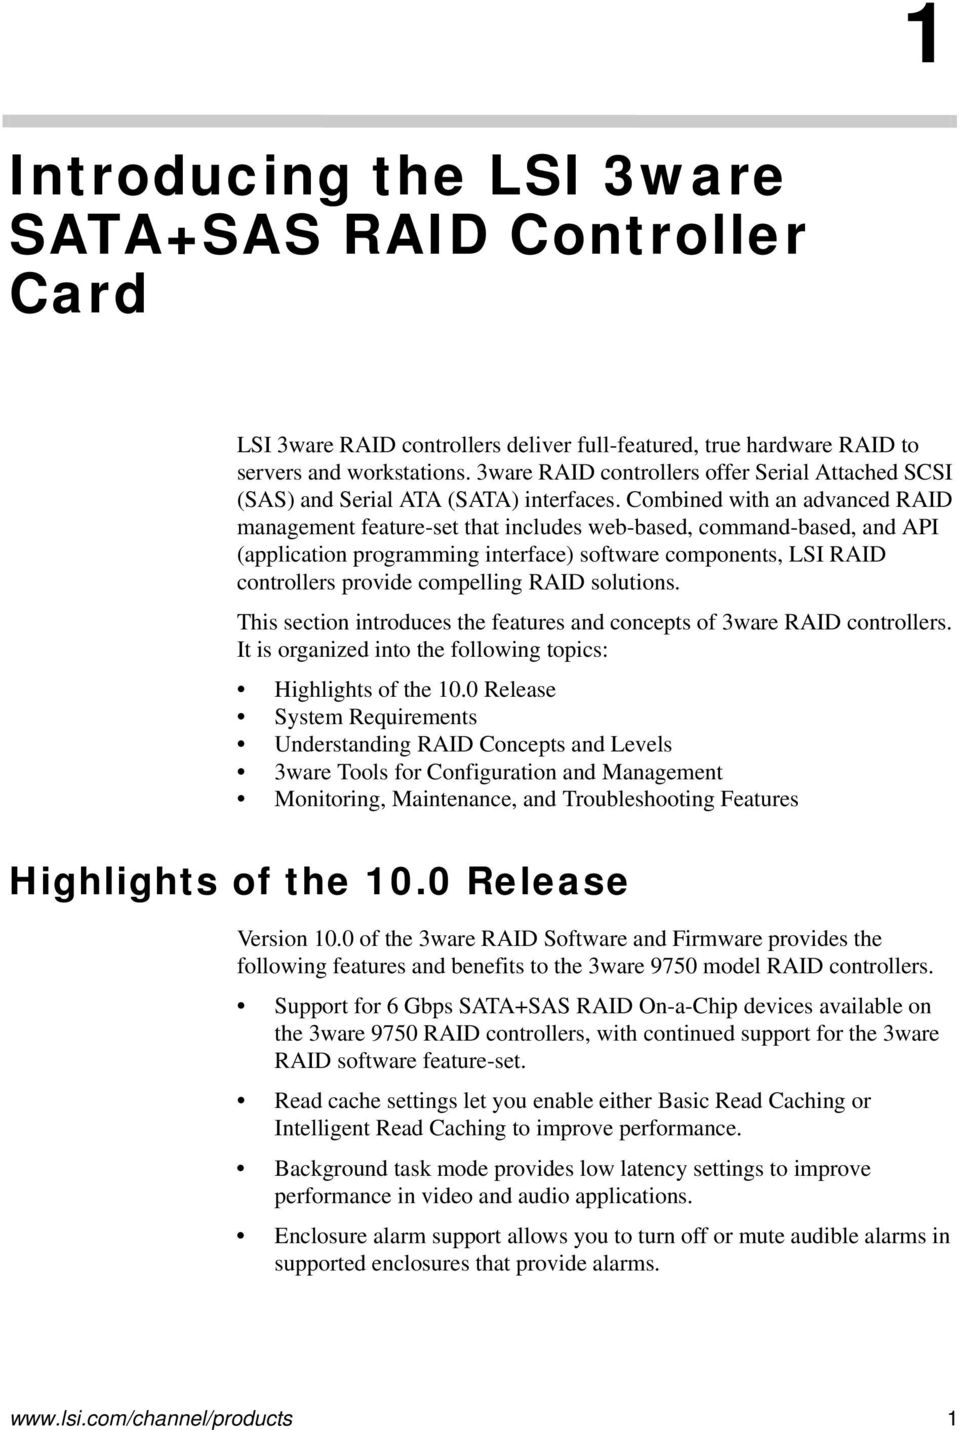 Combined with an advanced RAID management feature-set that includes web-based, command-based, and API (application programming interface) software components, LSI RAID controllers provide compelling